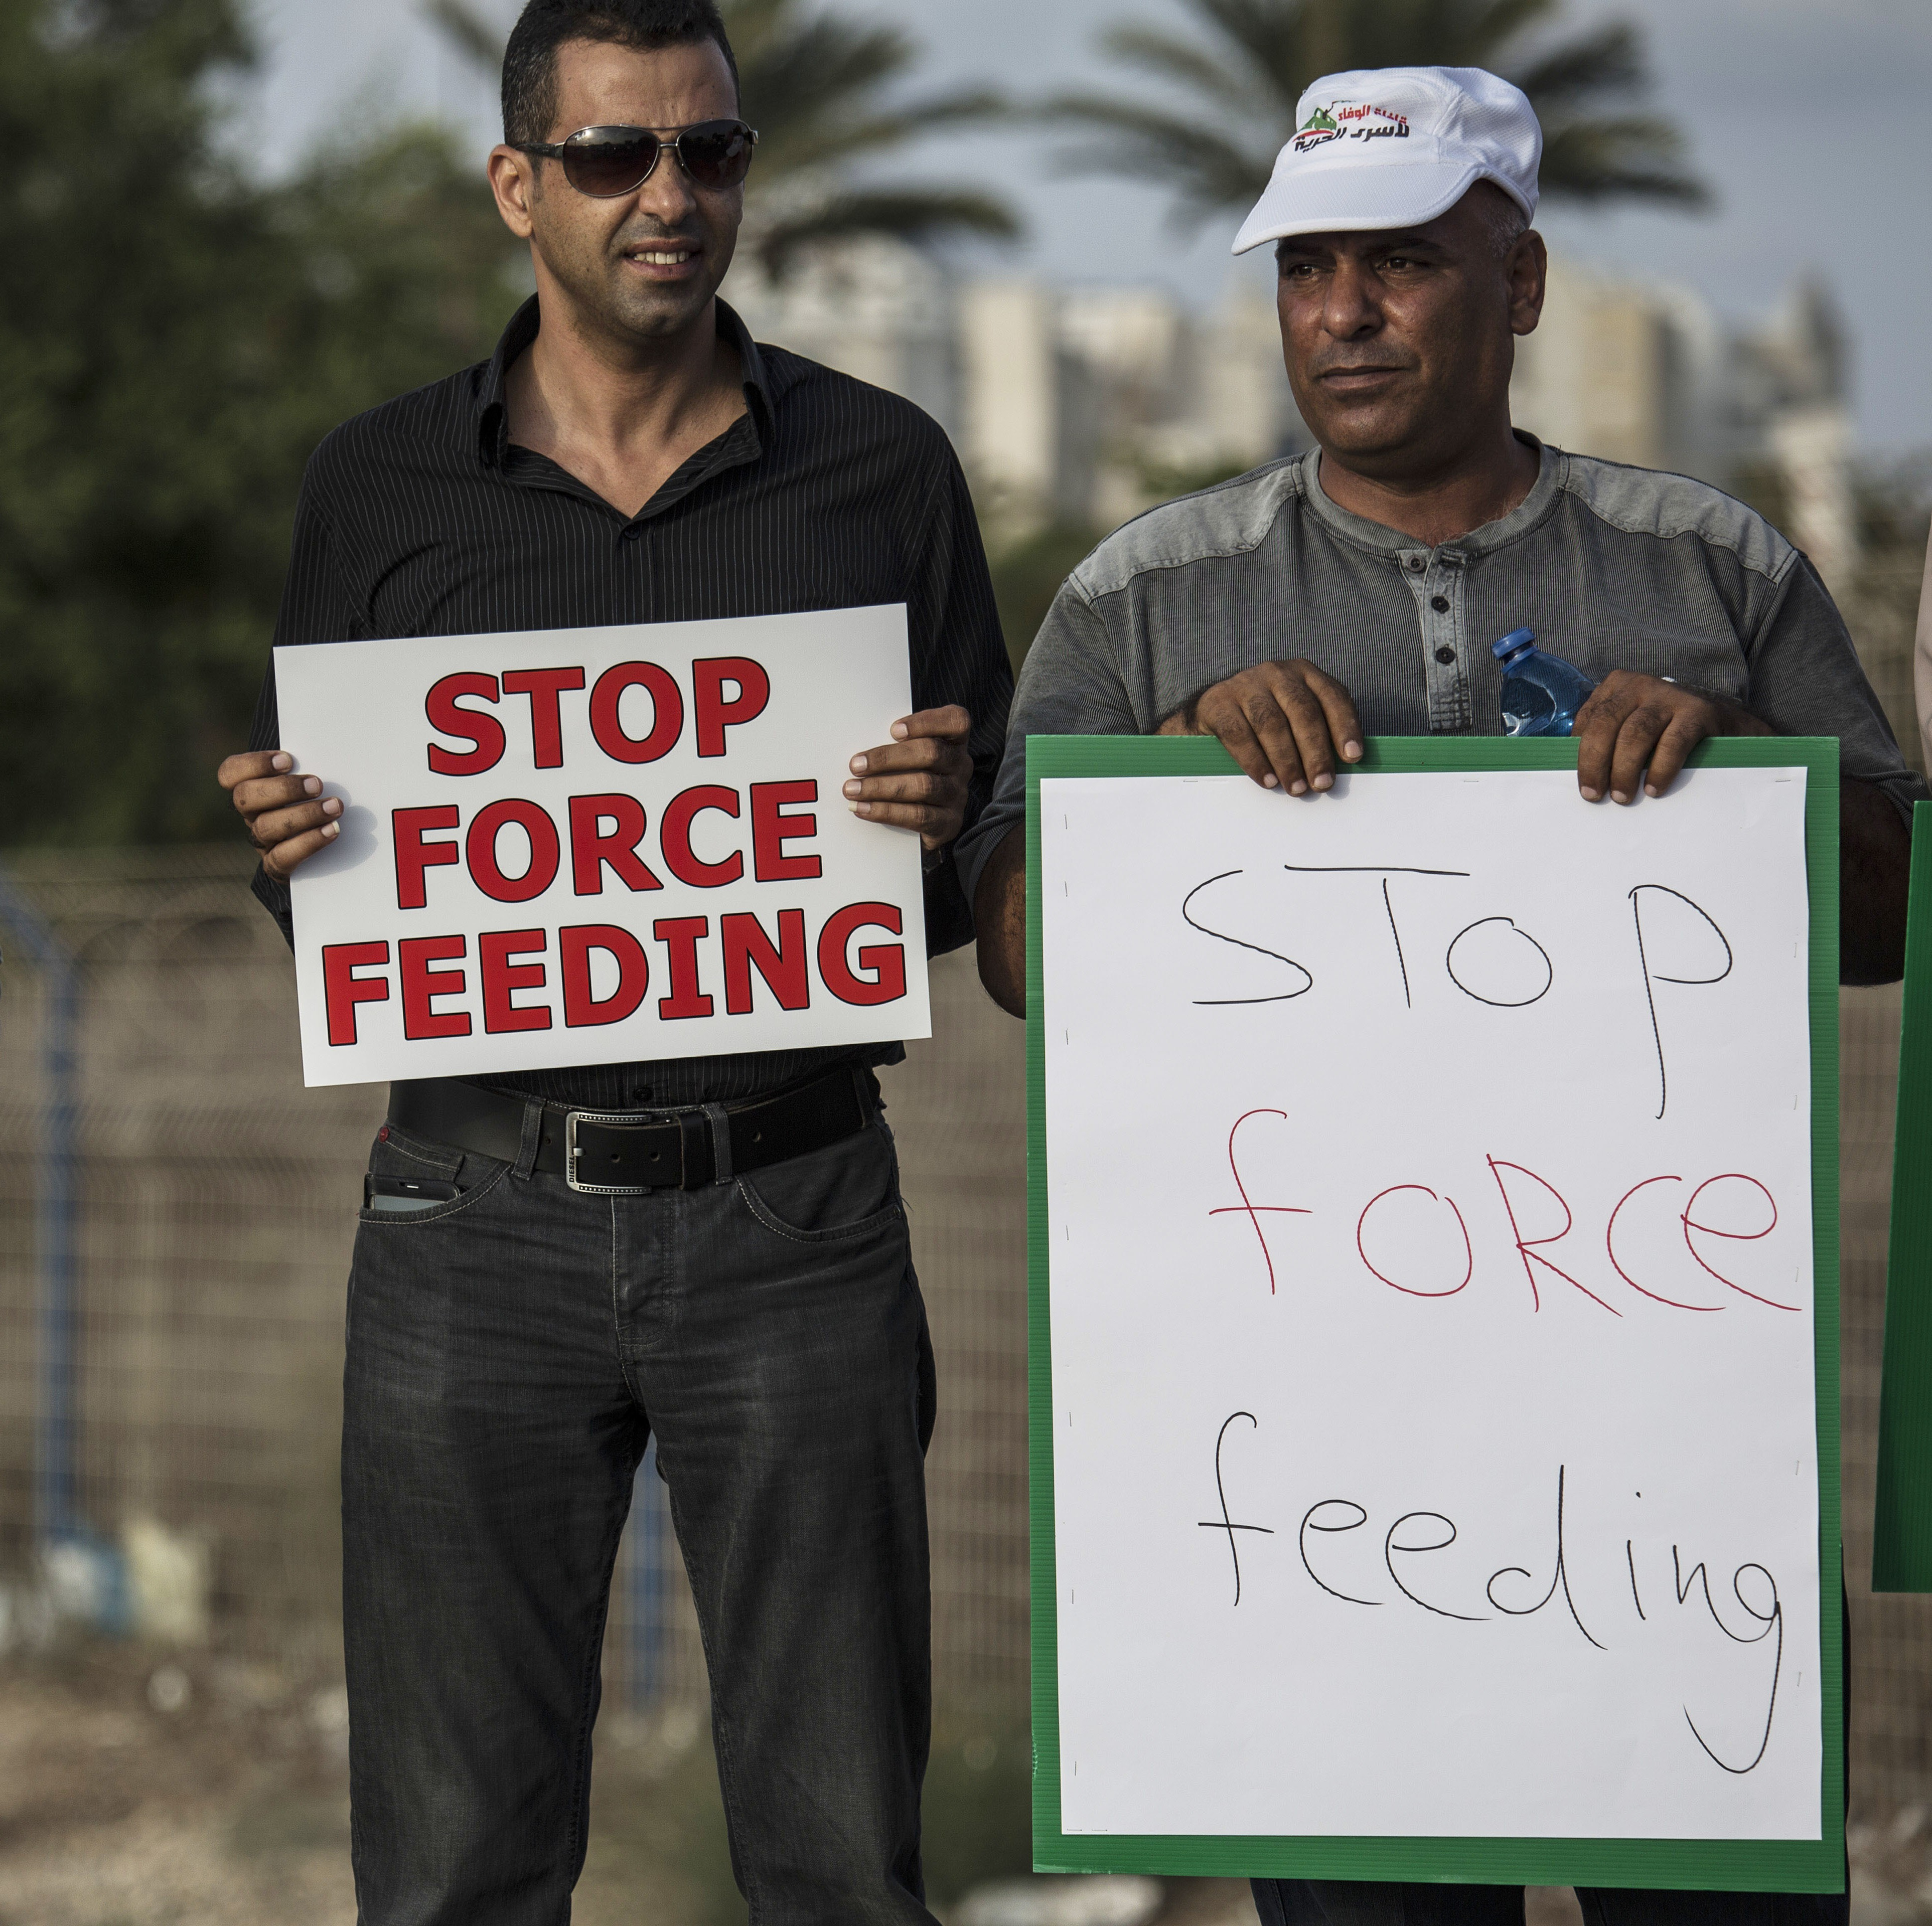 is force feeding unethical The case against force feeding by  in which state forces should be allowed to force feed individuals who go on hunger strikes if the strike  groups call the idea of force-feeding unethical.